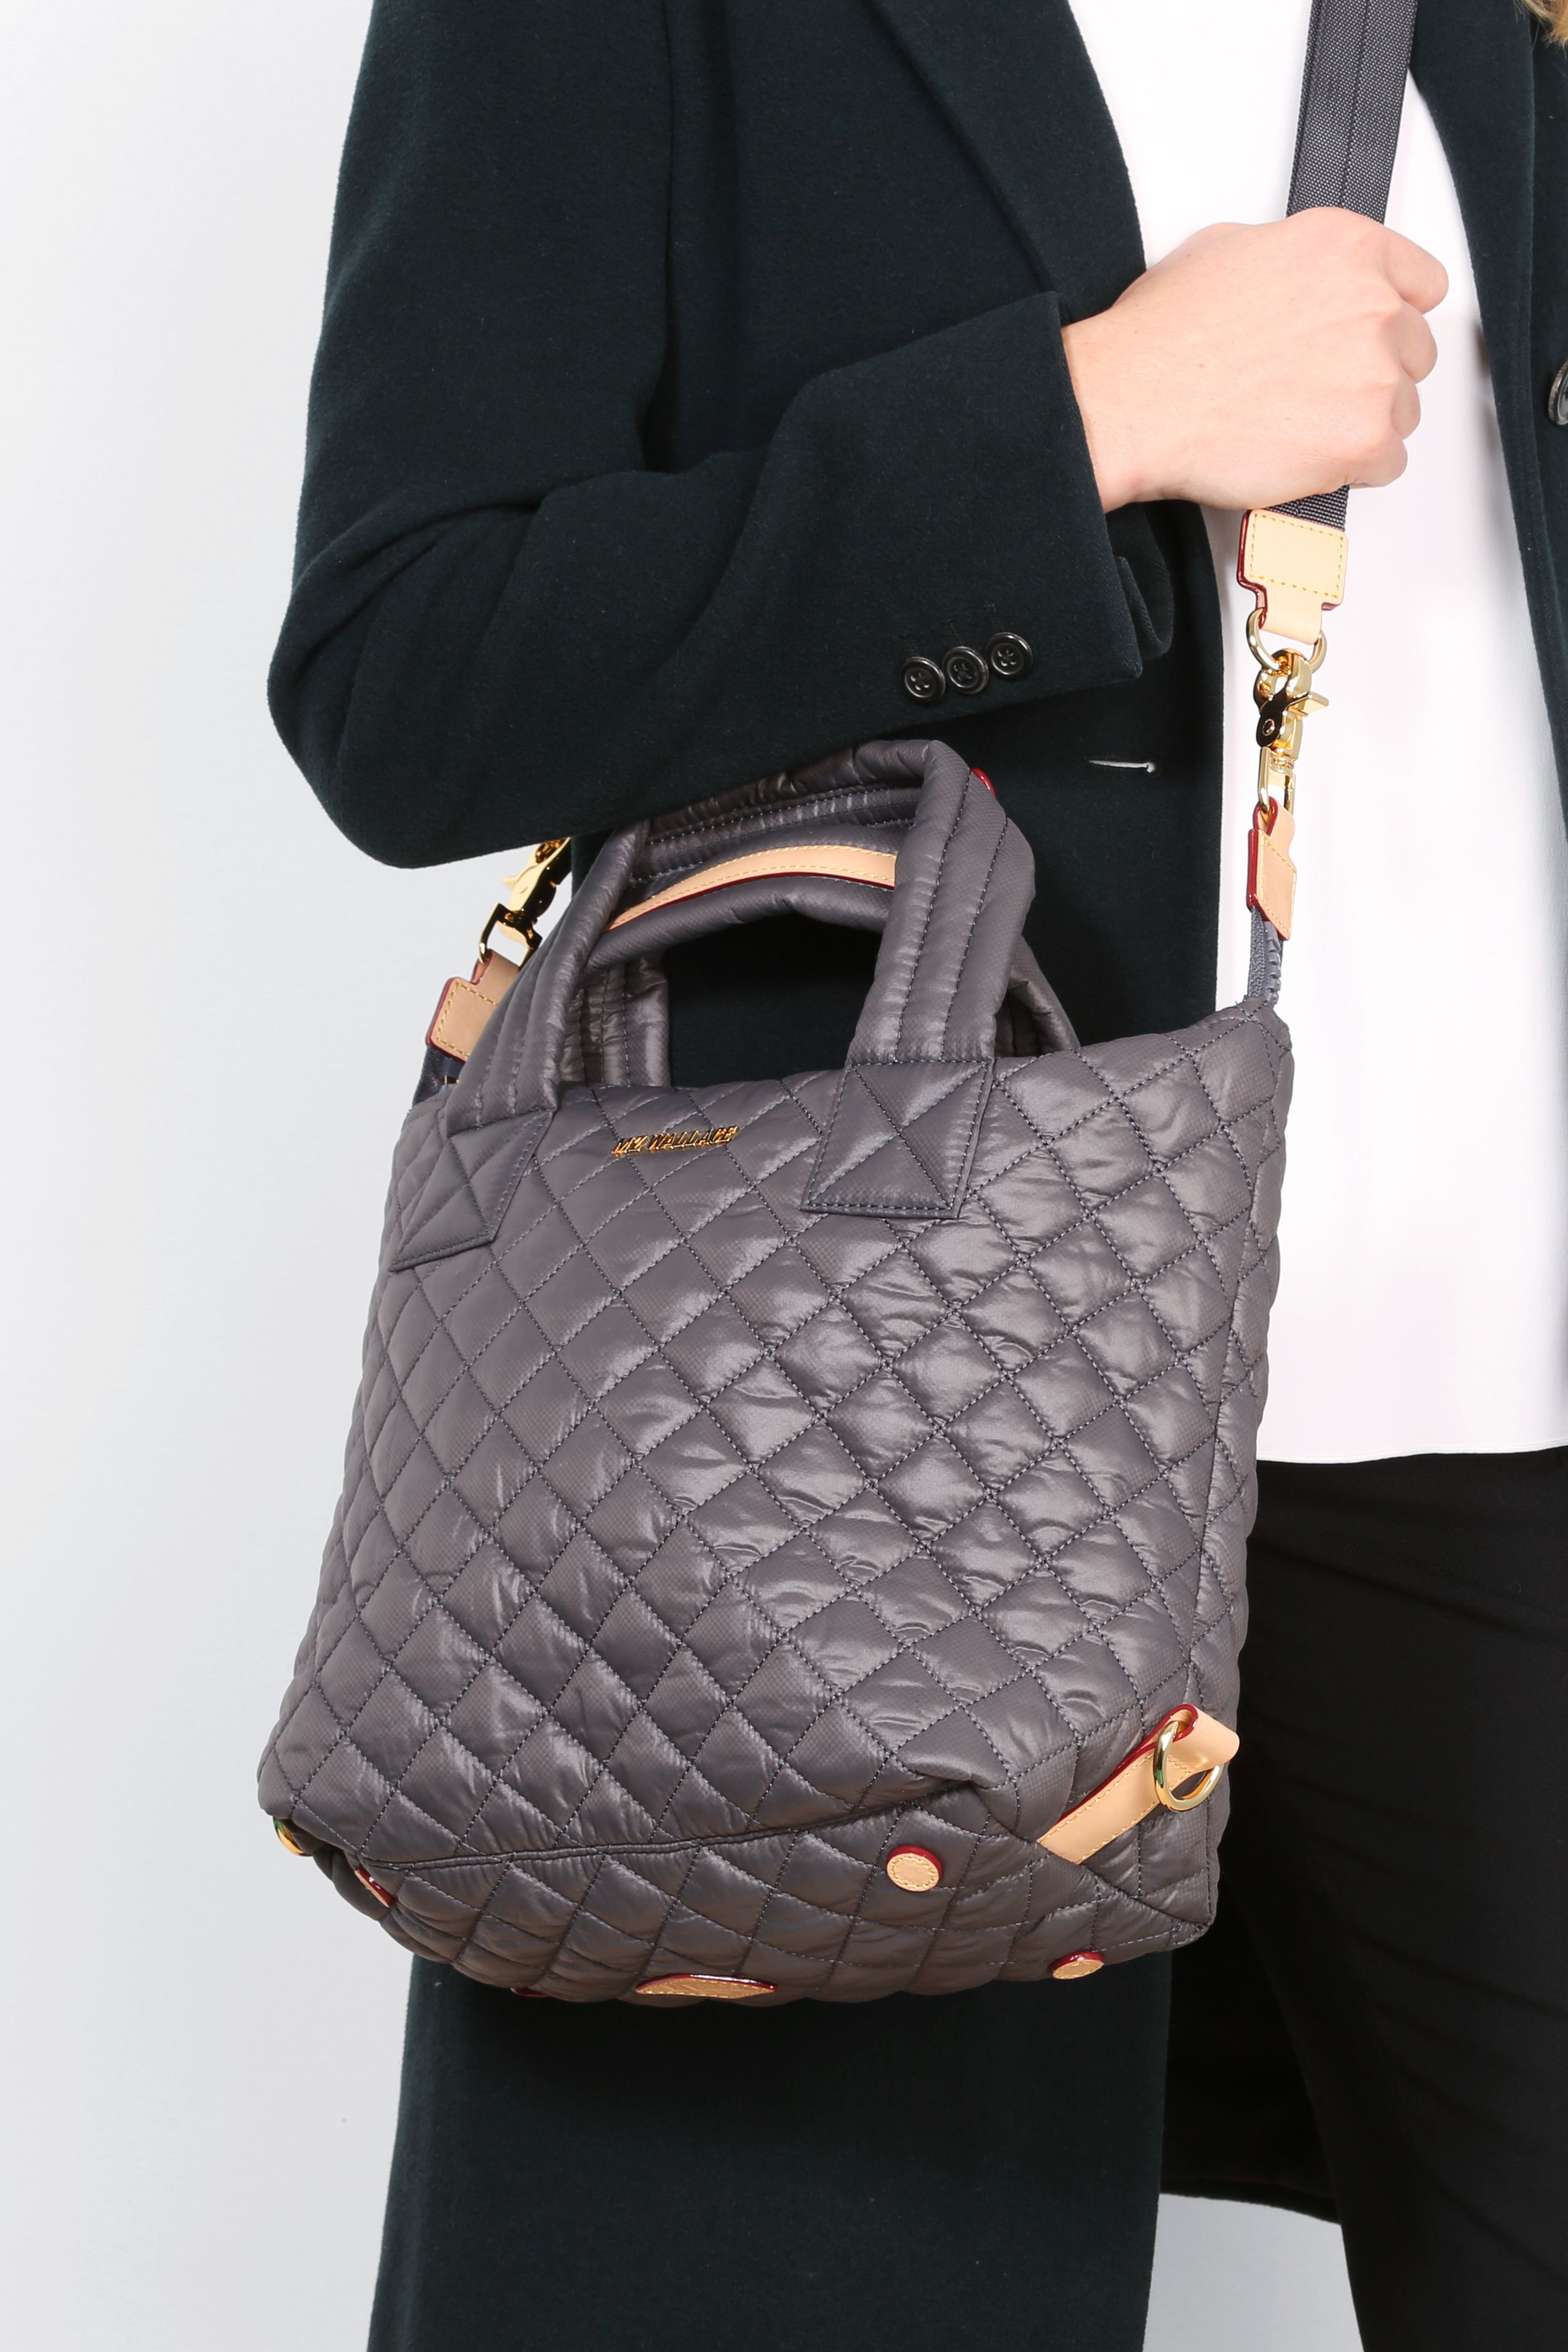 b938cb33e559 MZ Wallace Oxford Nylon Quilted Small Sutton Bag worn with the crossbody  strap.